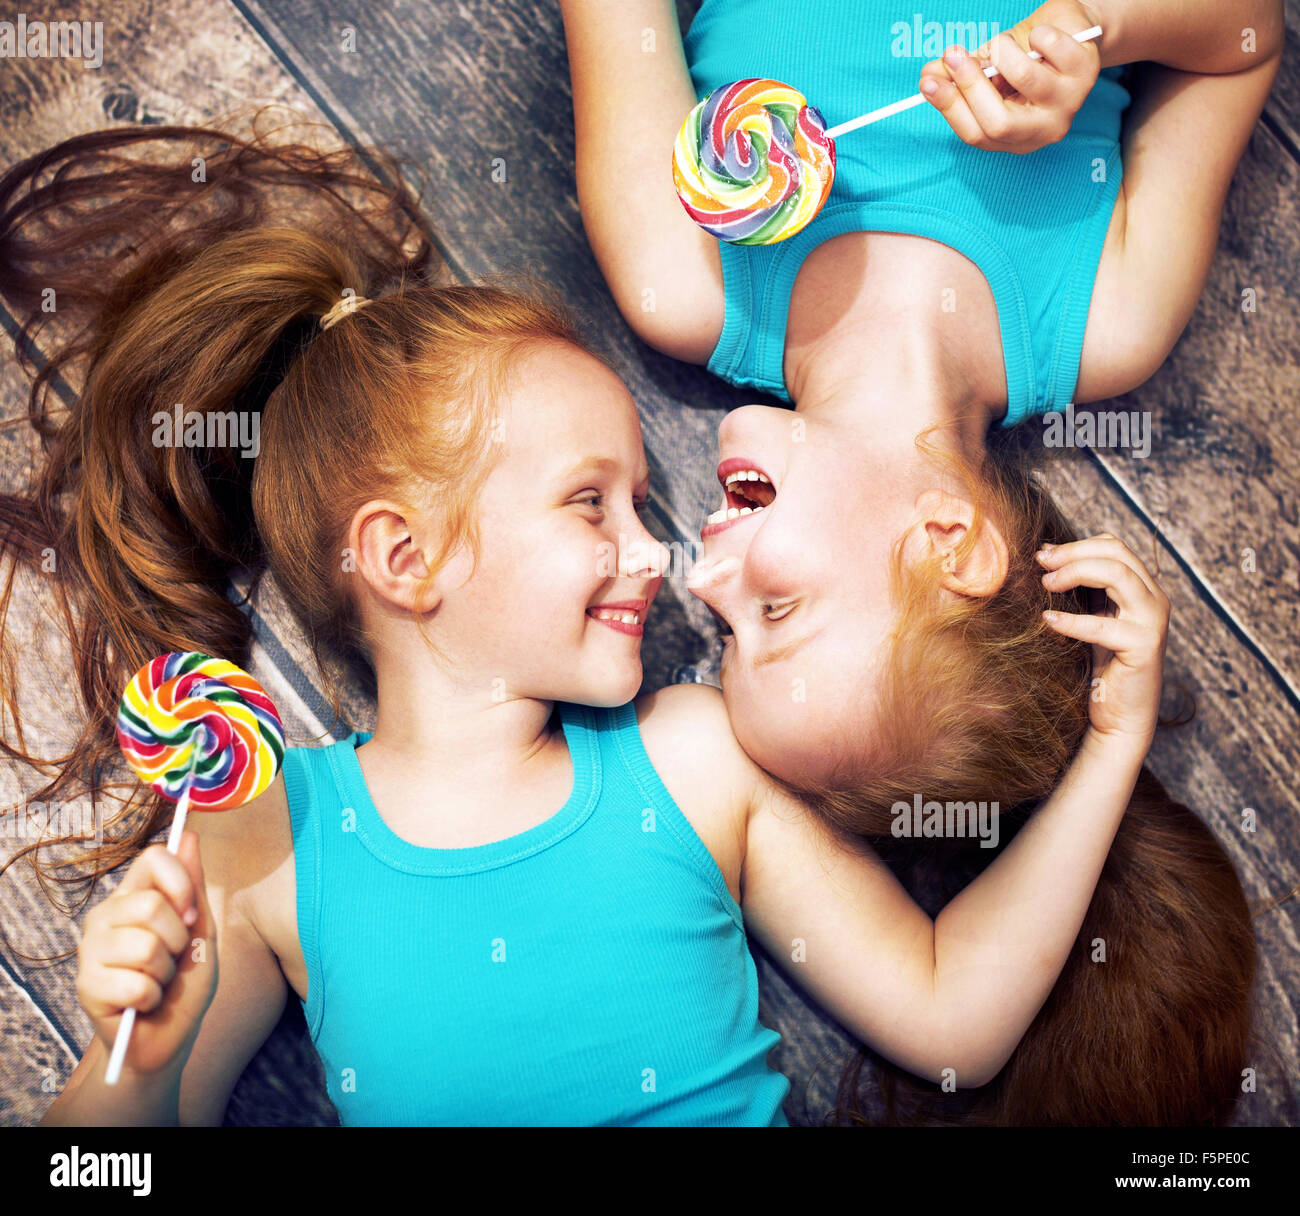 Fine portrait of a twin sisters holding colorful  lollipops - Stock Image